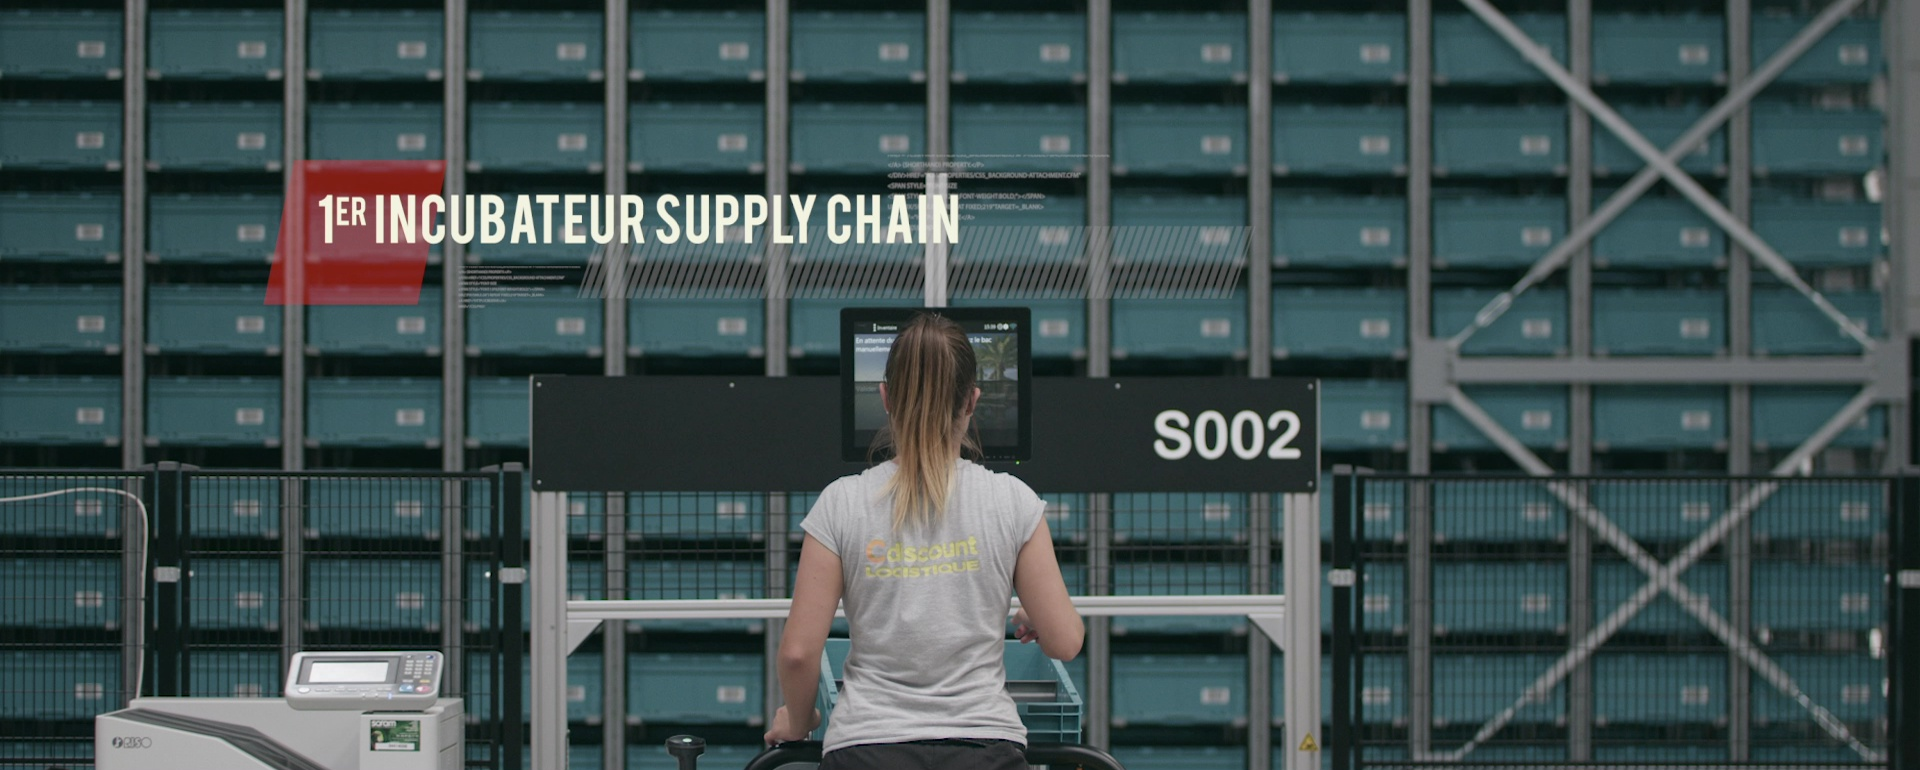 cdiscount-1er-incubateur-supply-chain